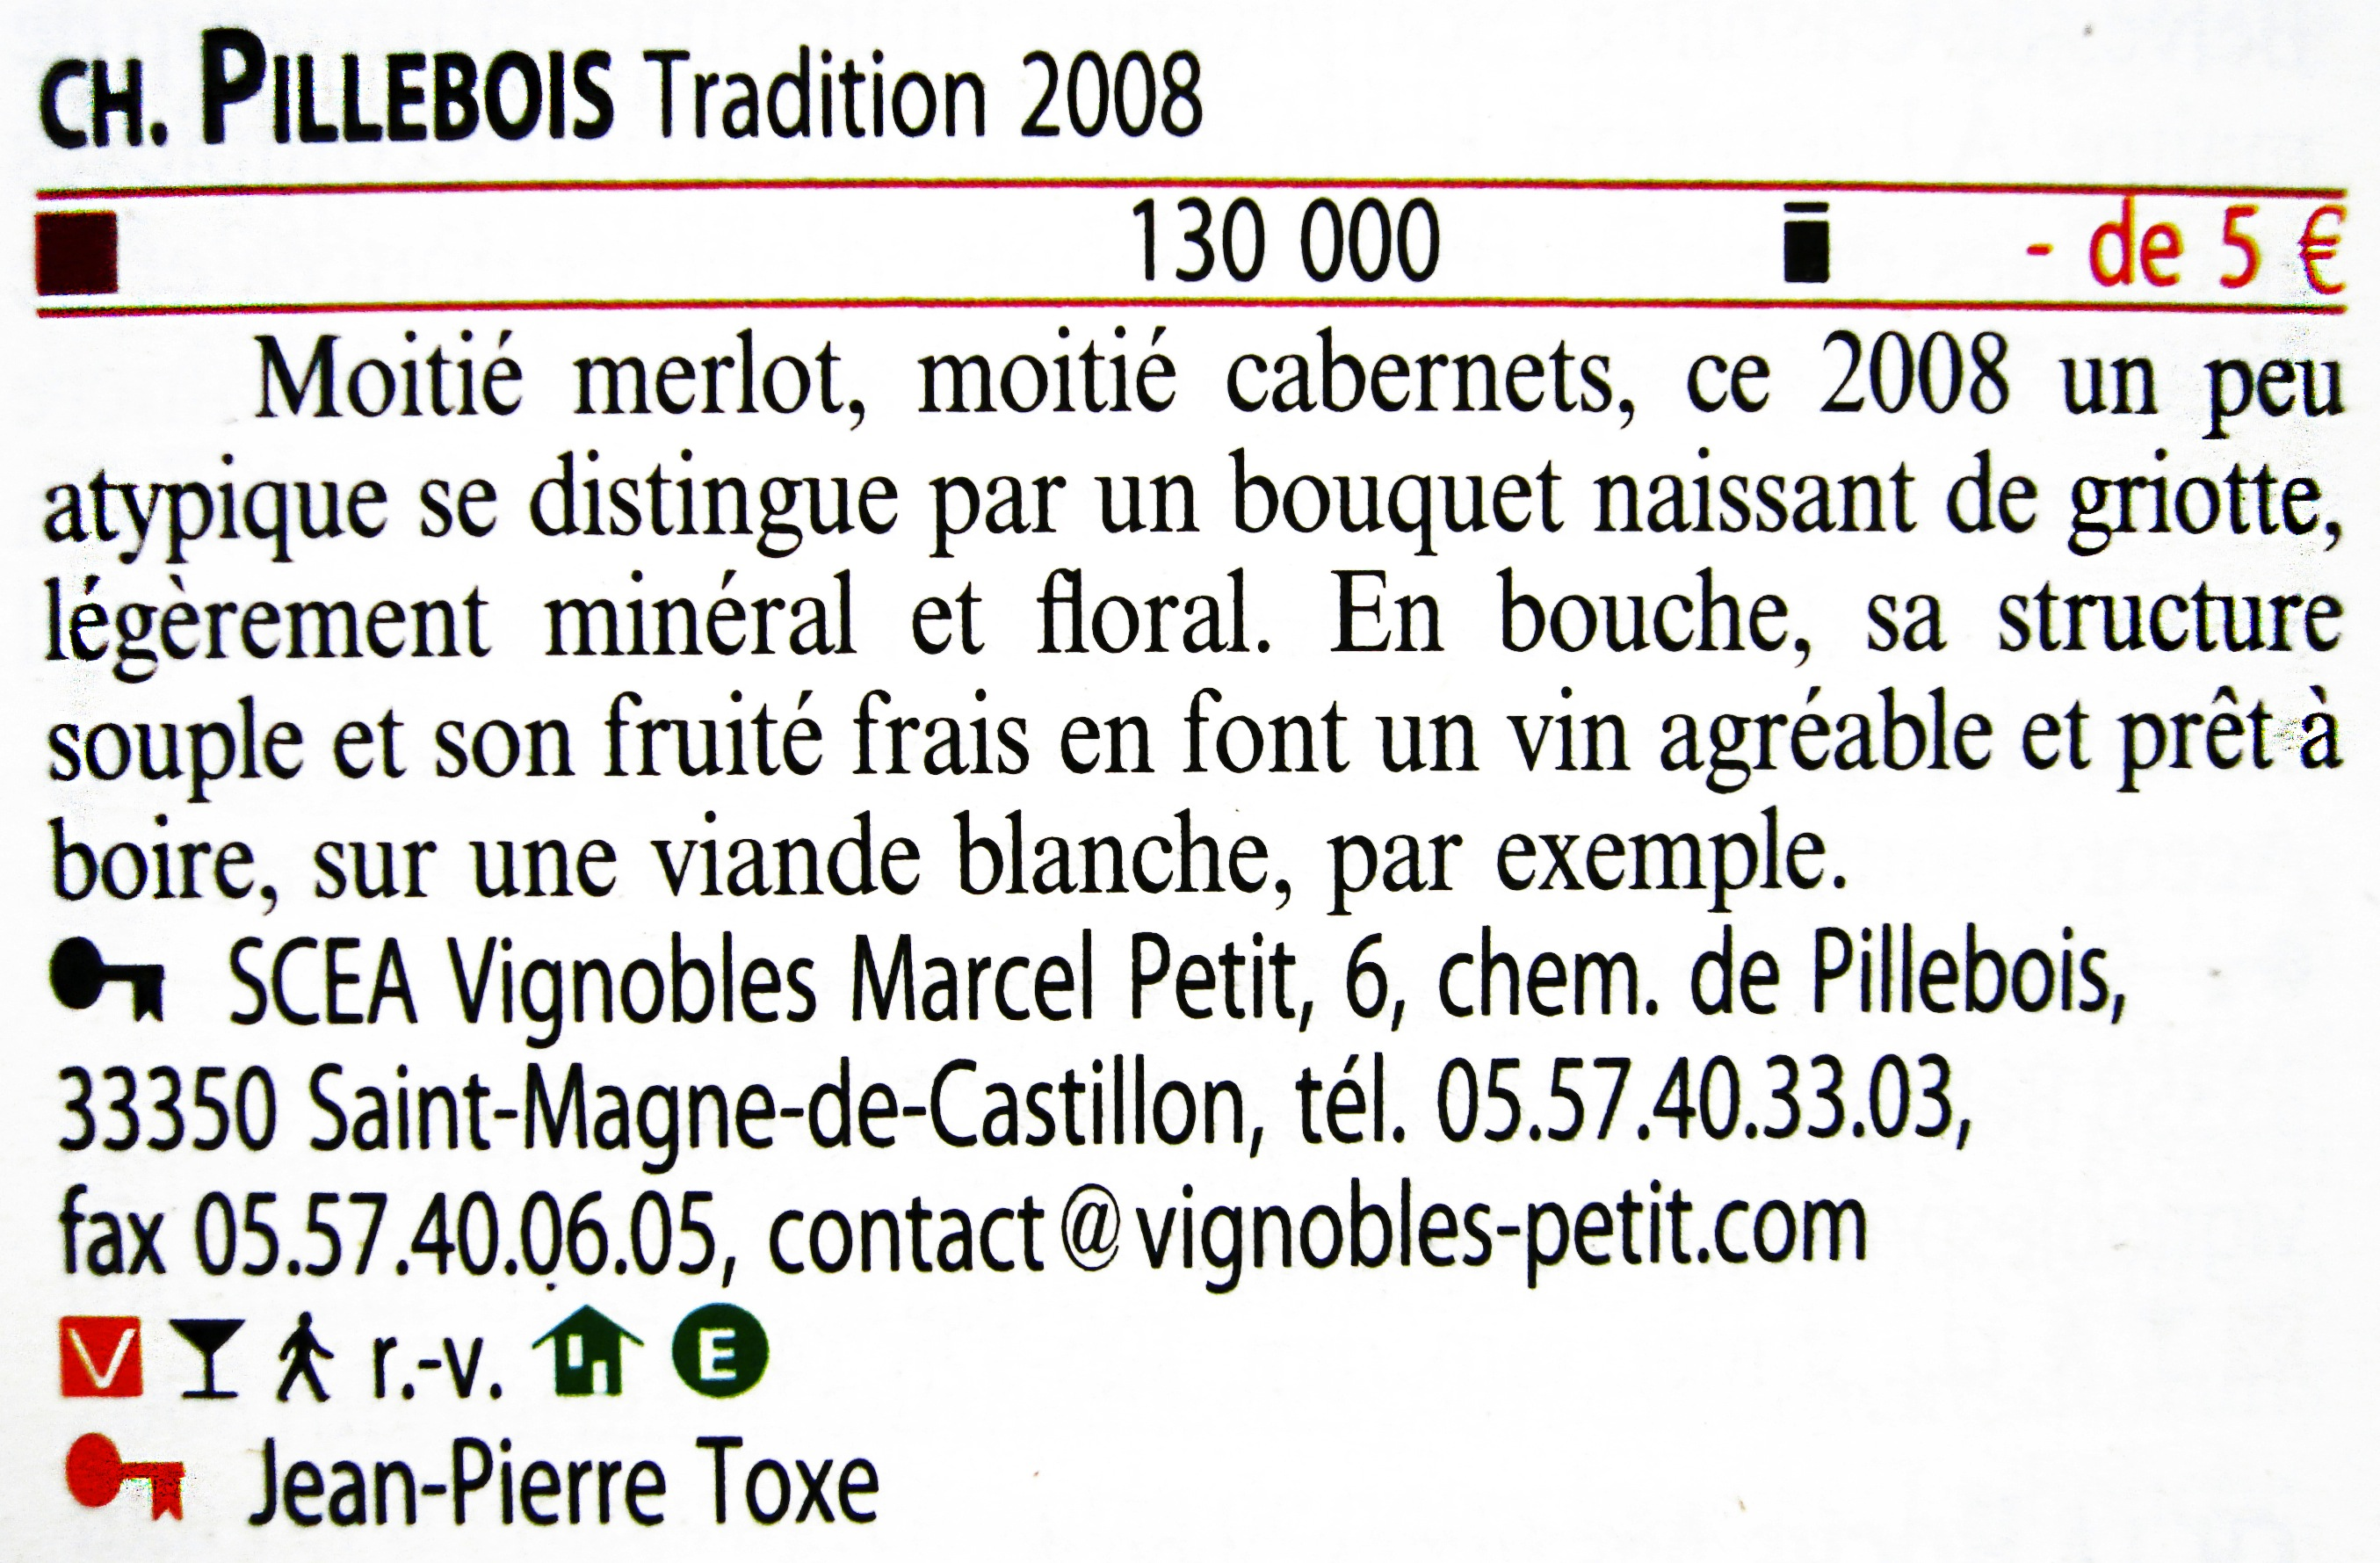 Pillebois tradition 2008